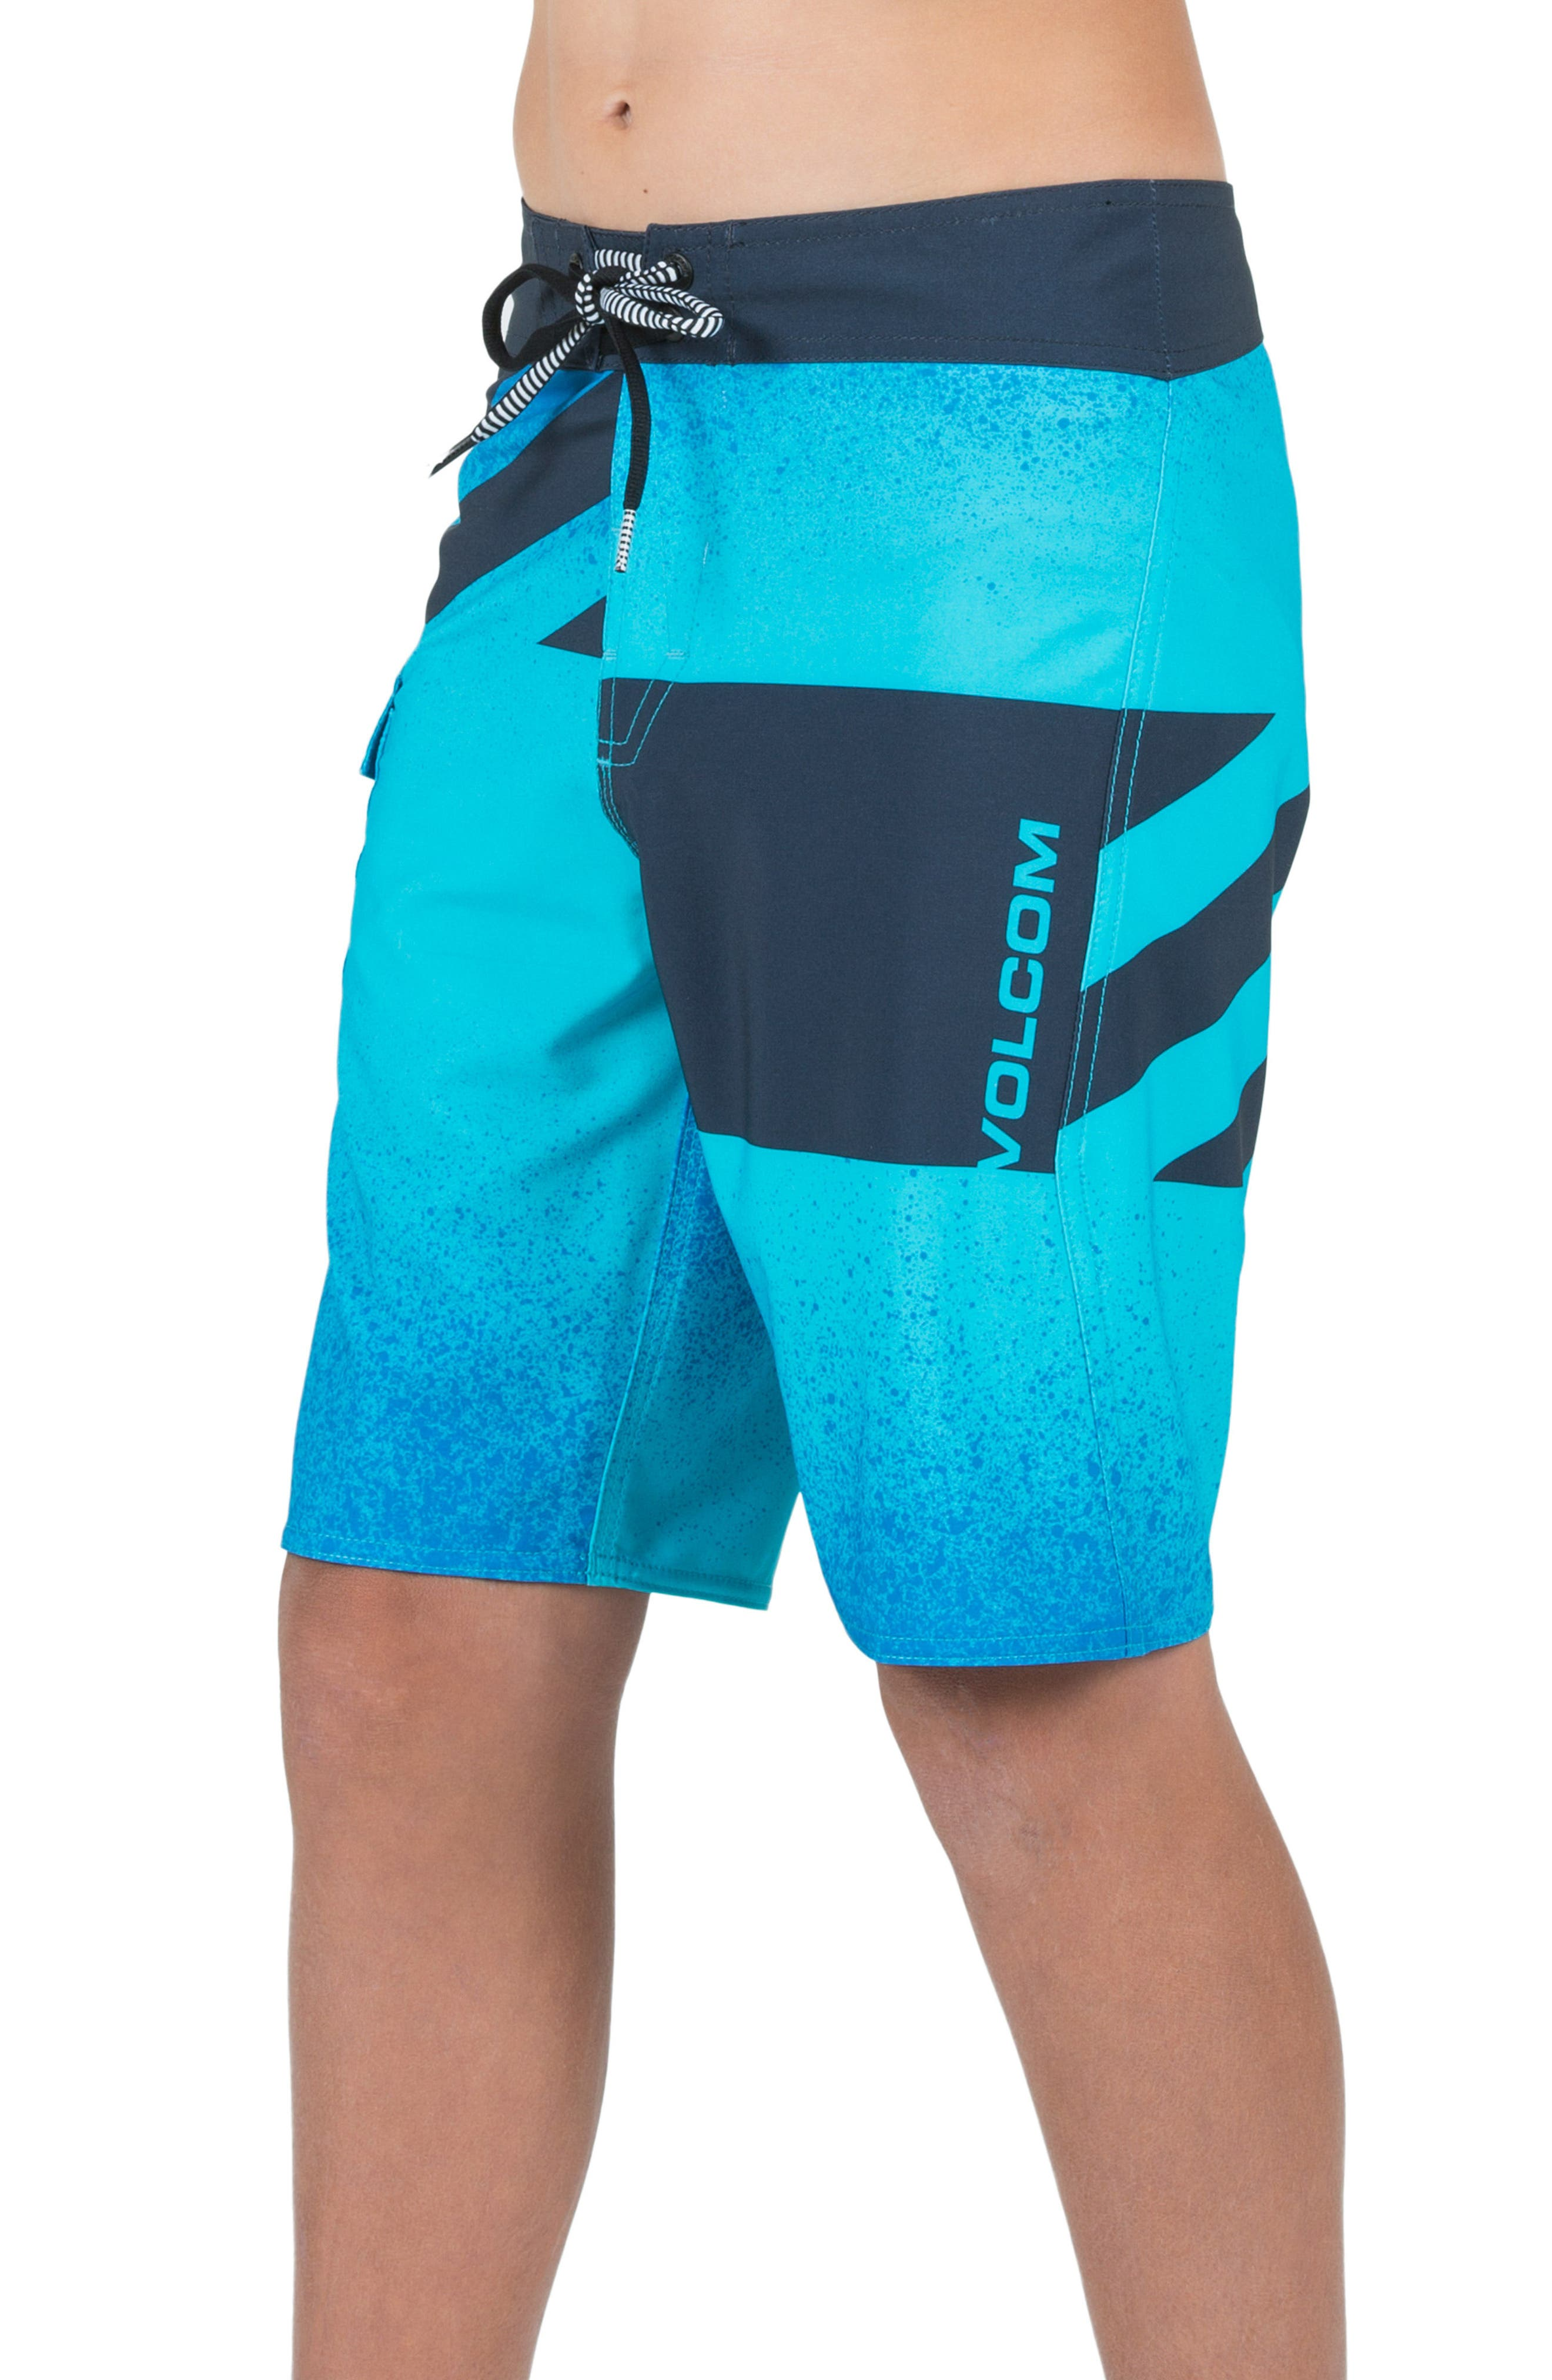 Logo Party Pack Mod Board Shorts,                             Alternate thumbnail 4, color,                             432